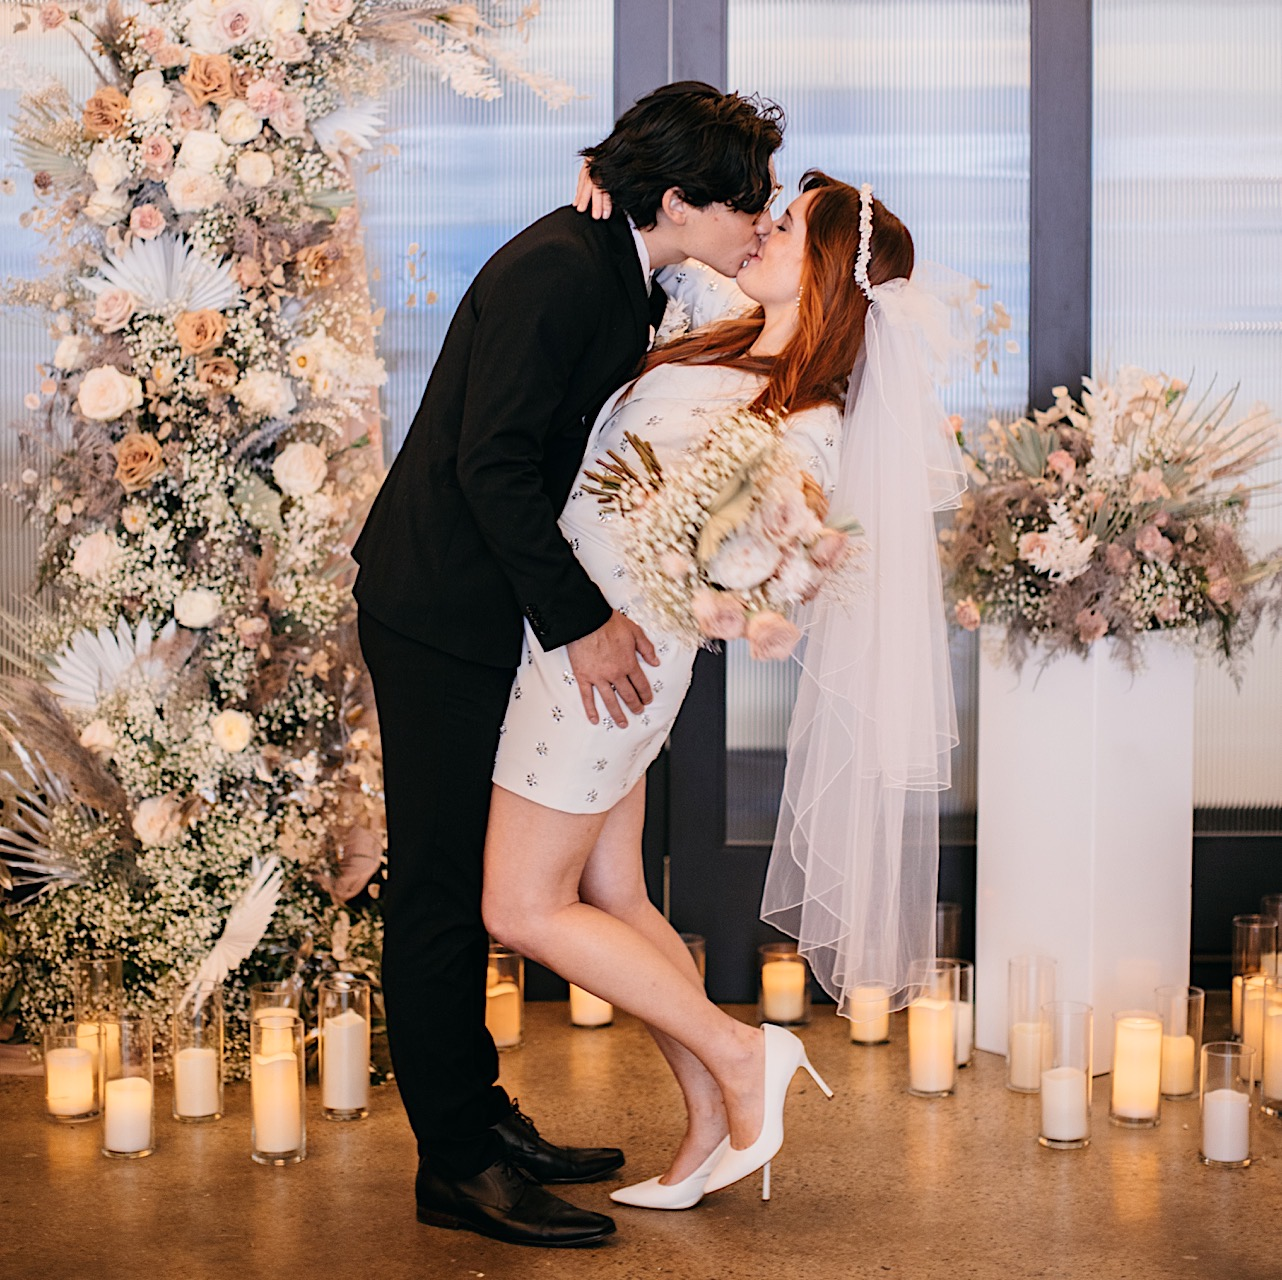 A groom kisses his wife in front of a floral arrangement and scattered candles.